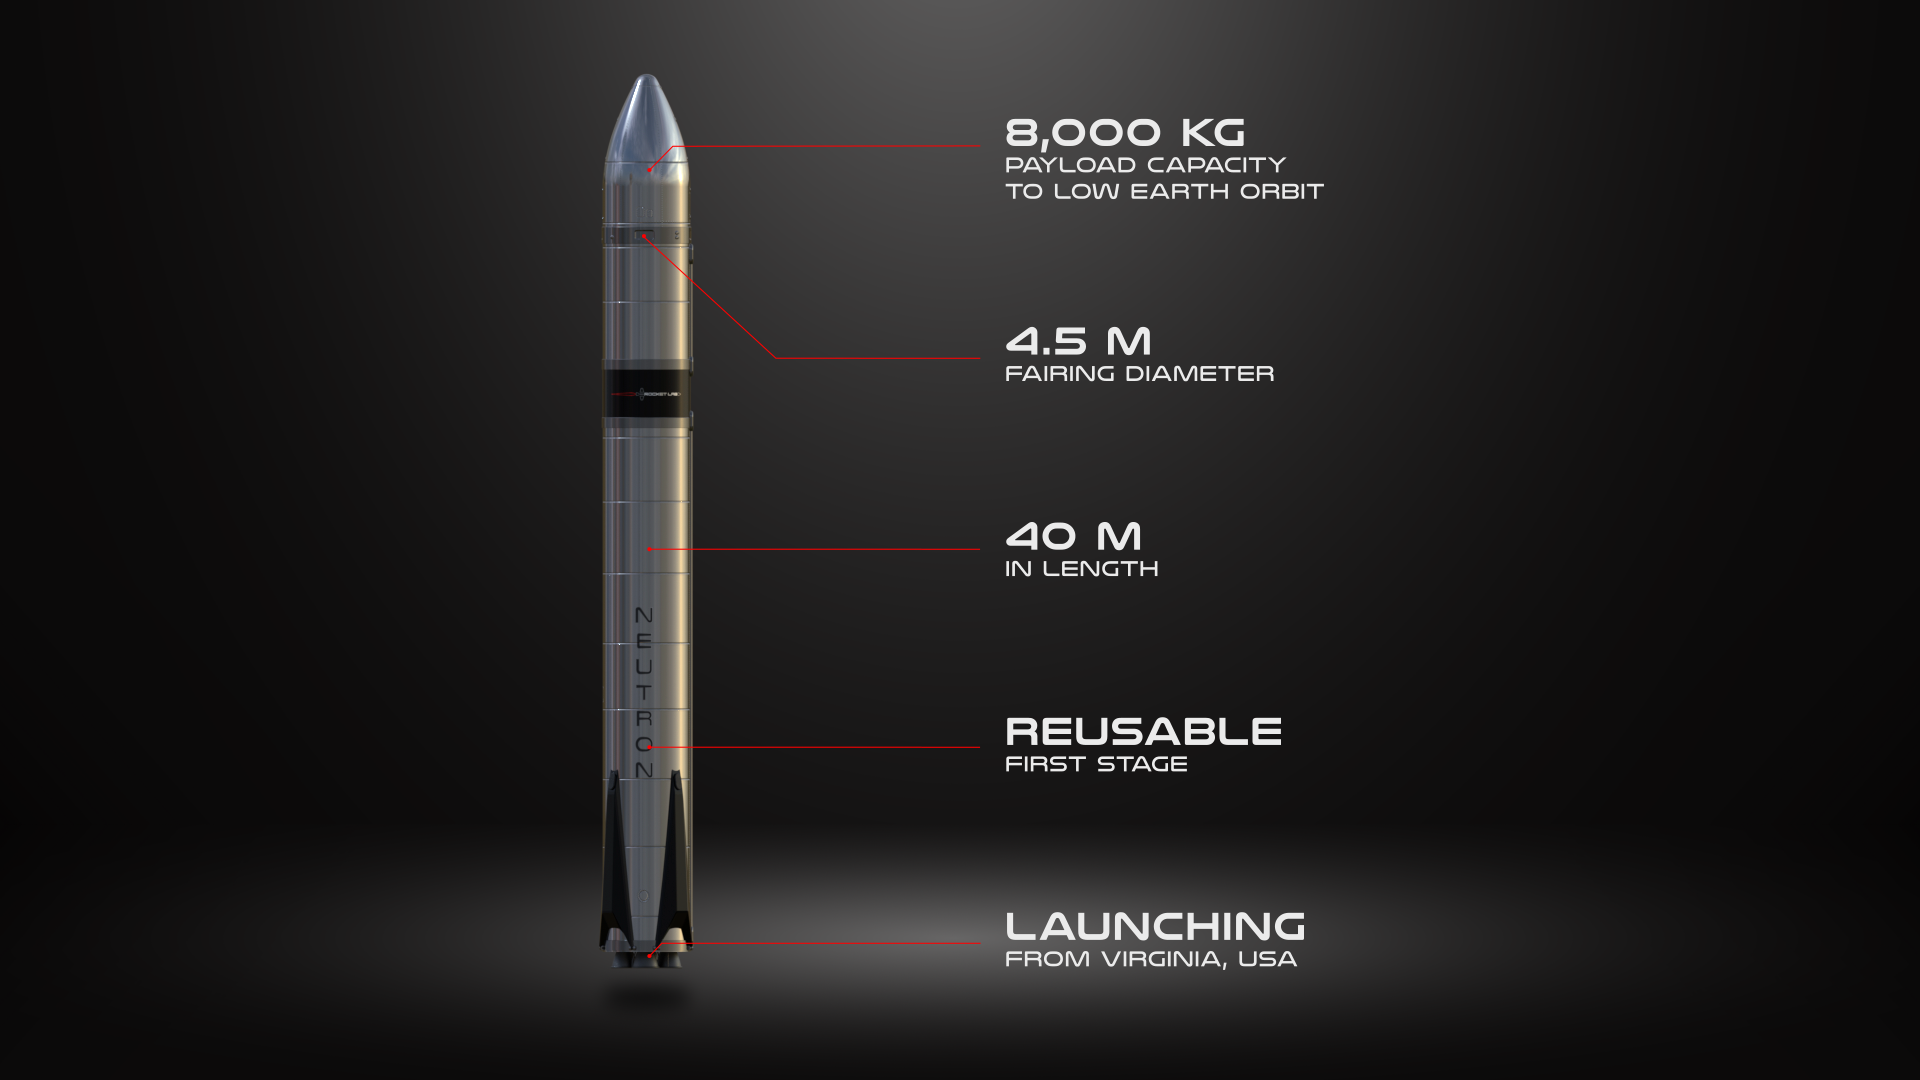 A brand new rocket, Venus missions and much more: Rocket Lab's Peter Beck is aiming big in space thumbnail